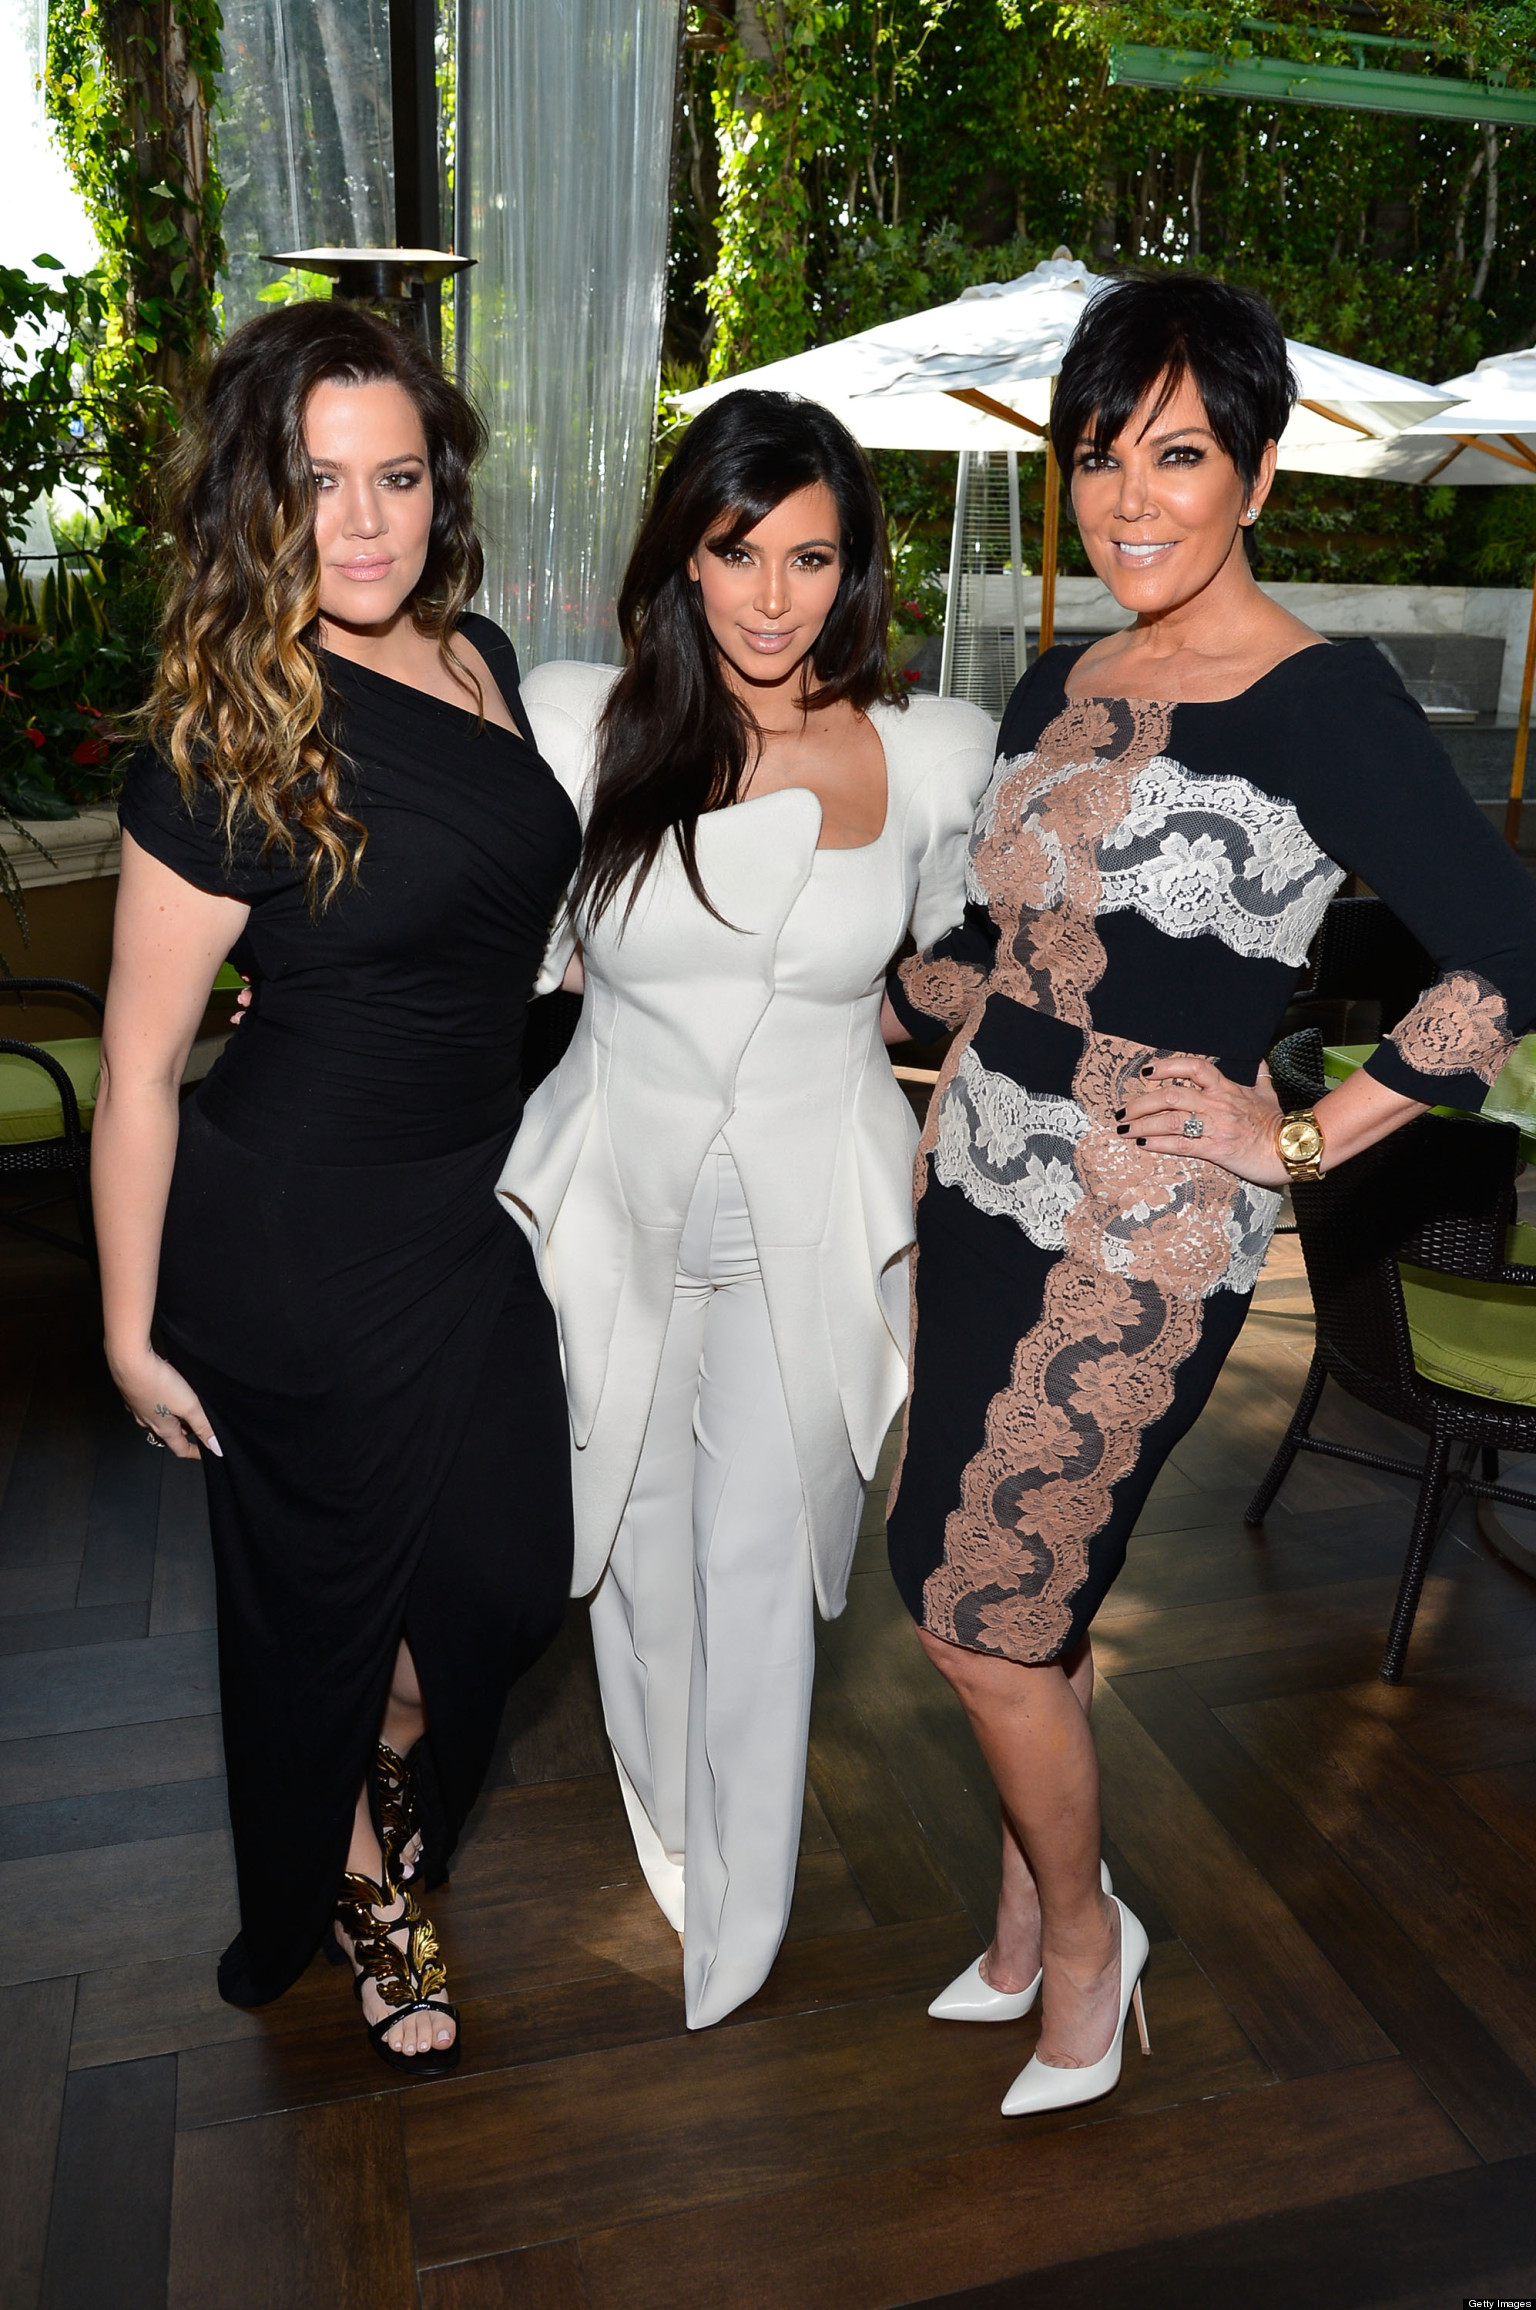 Keeping Up With The Kardashians: The Most Ridiculous Moments